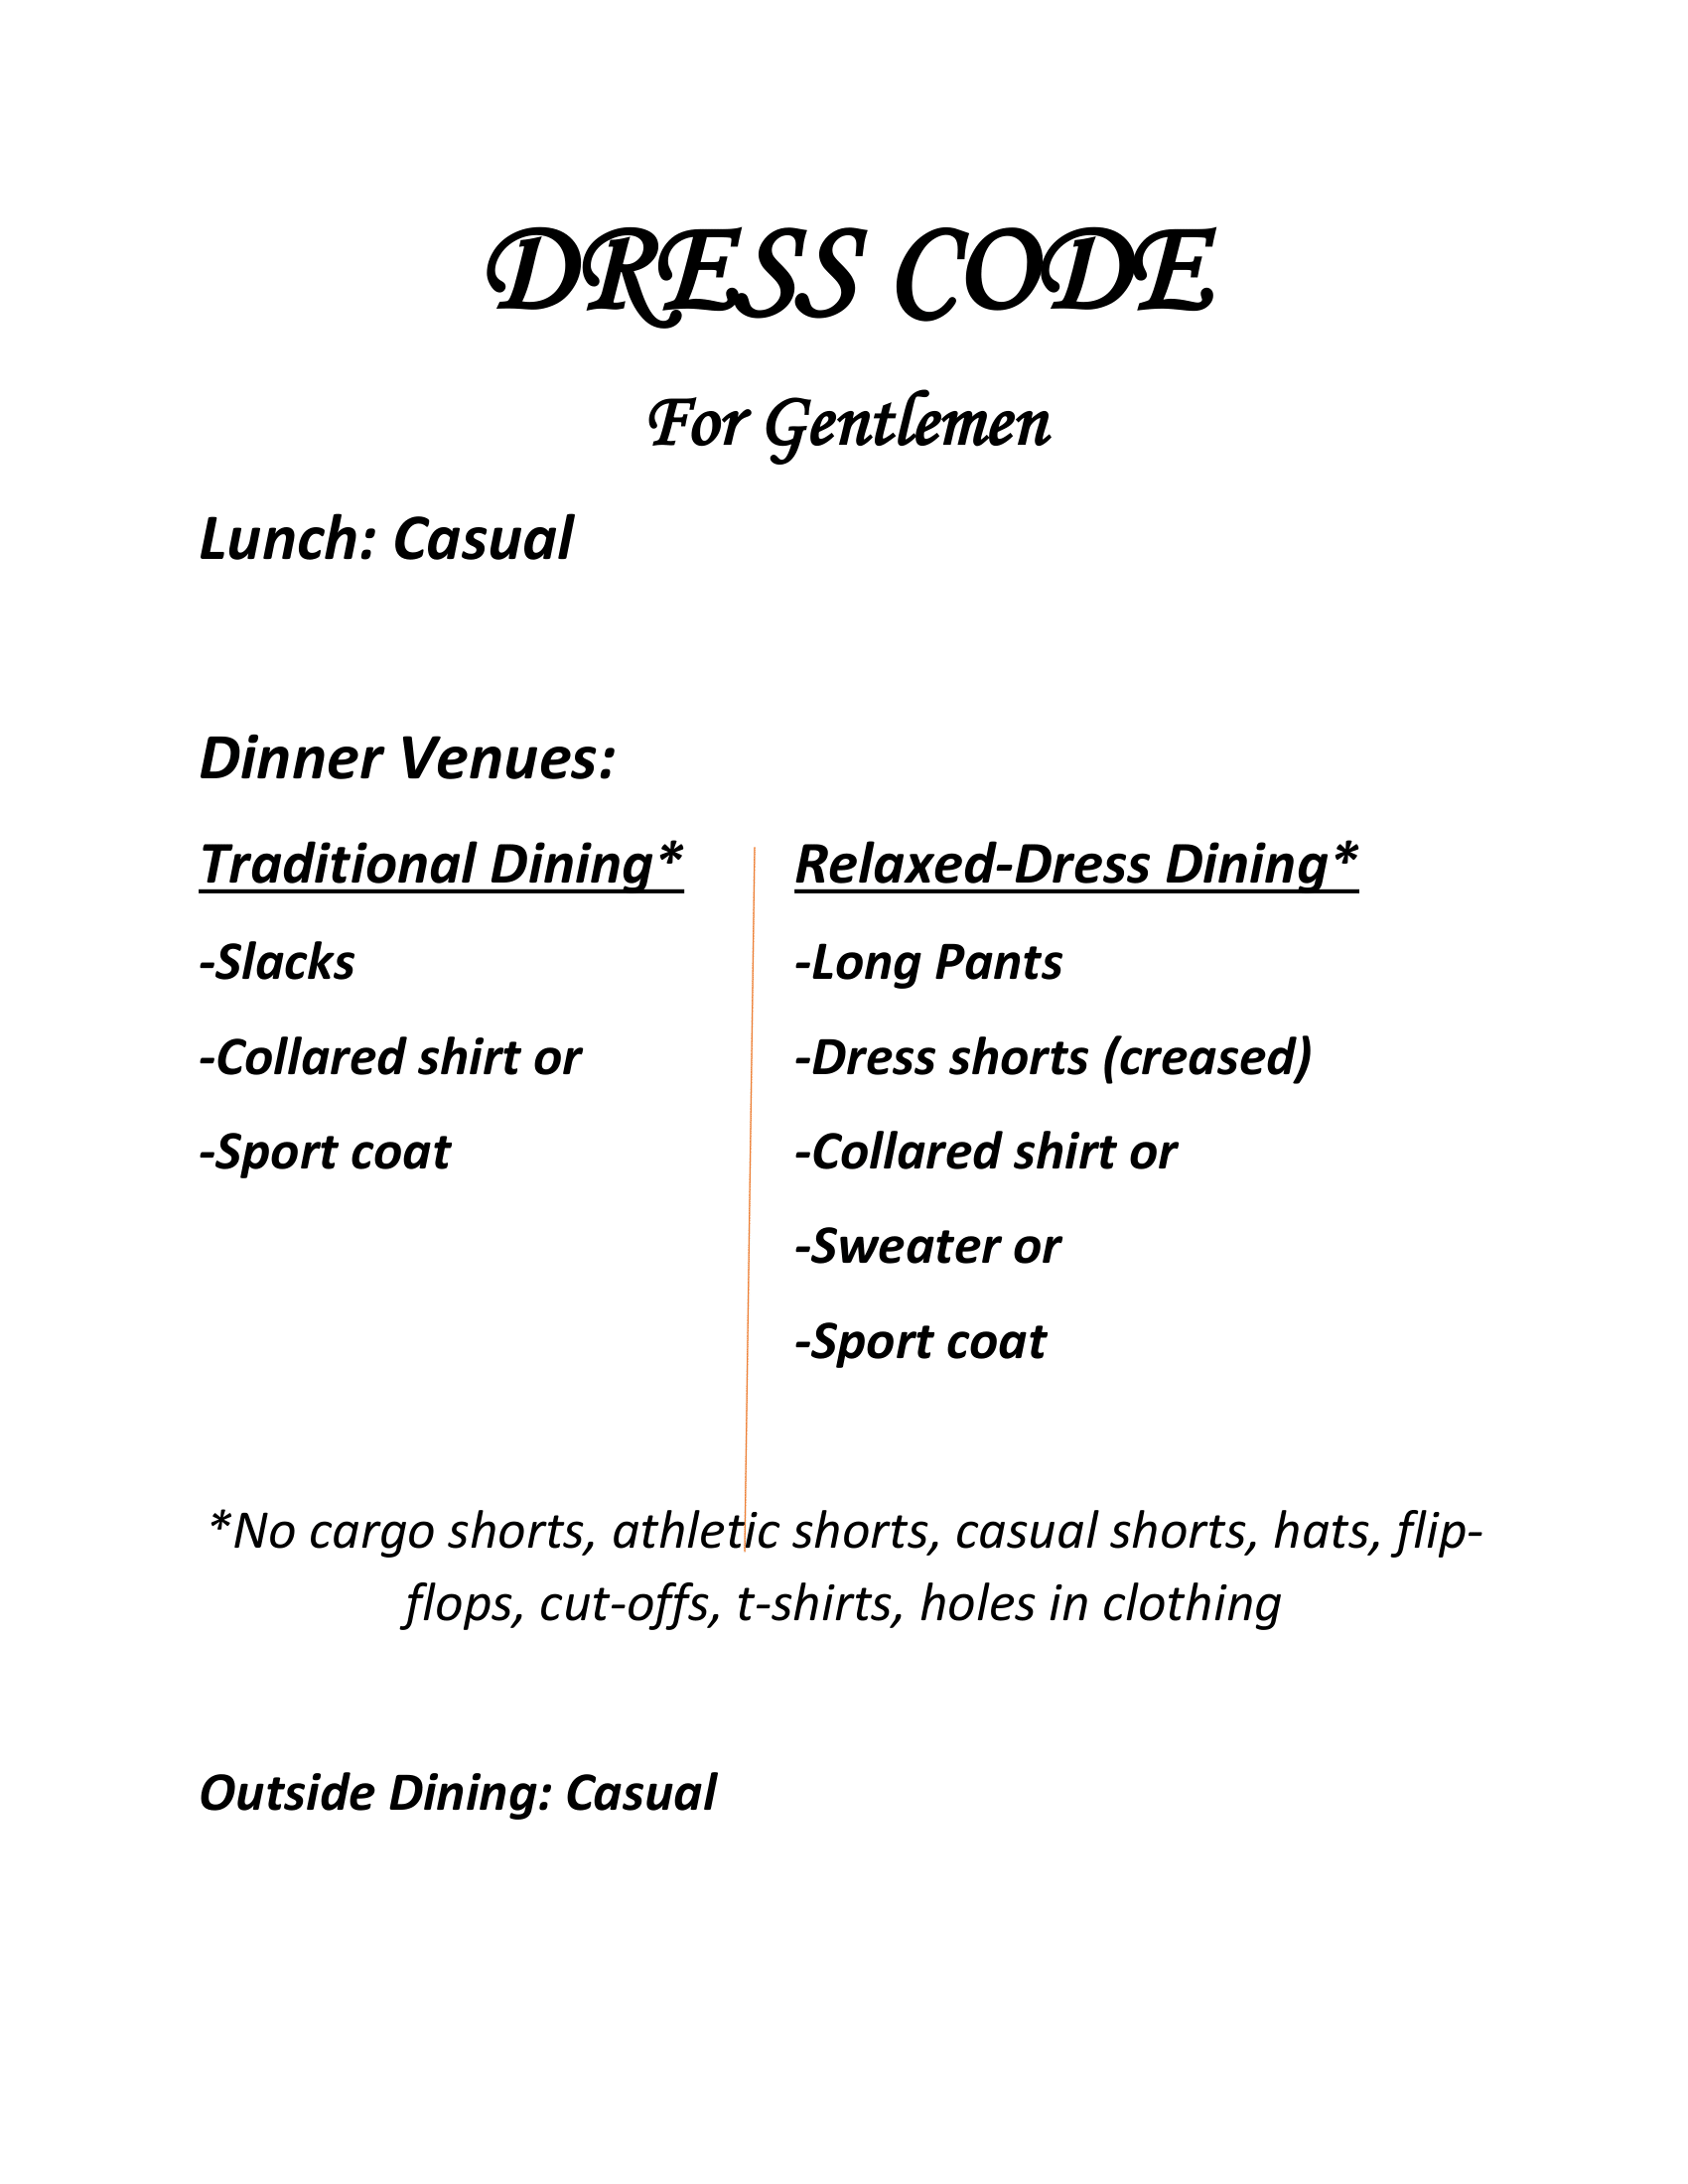 Dress Code for Gentlemen. Readable version above or clickable.